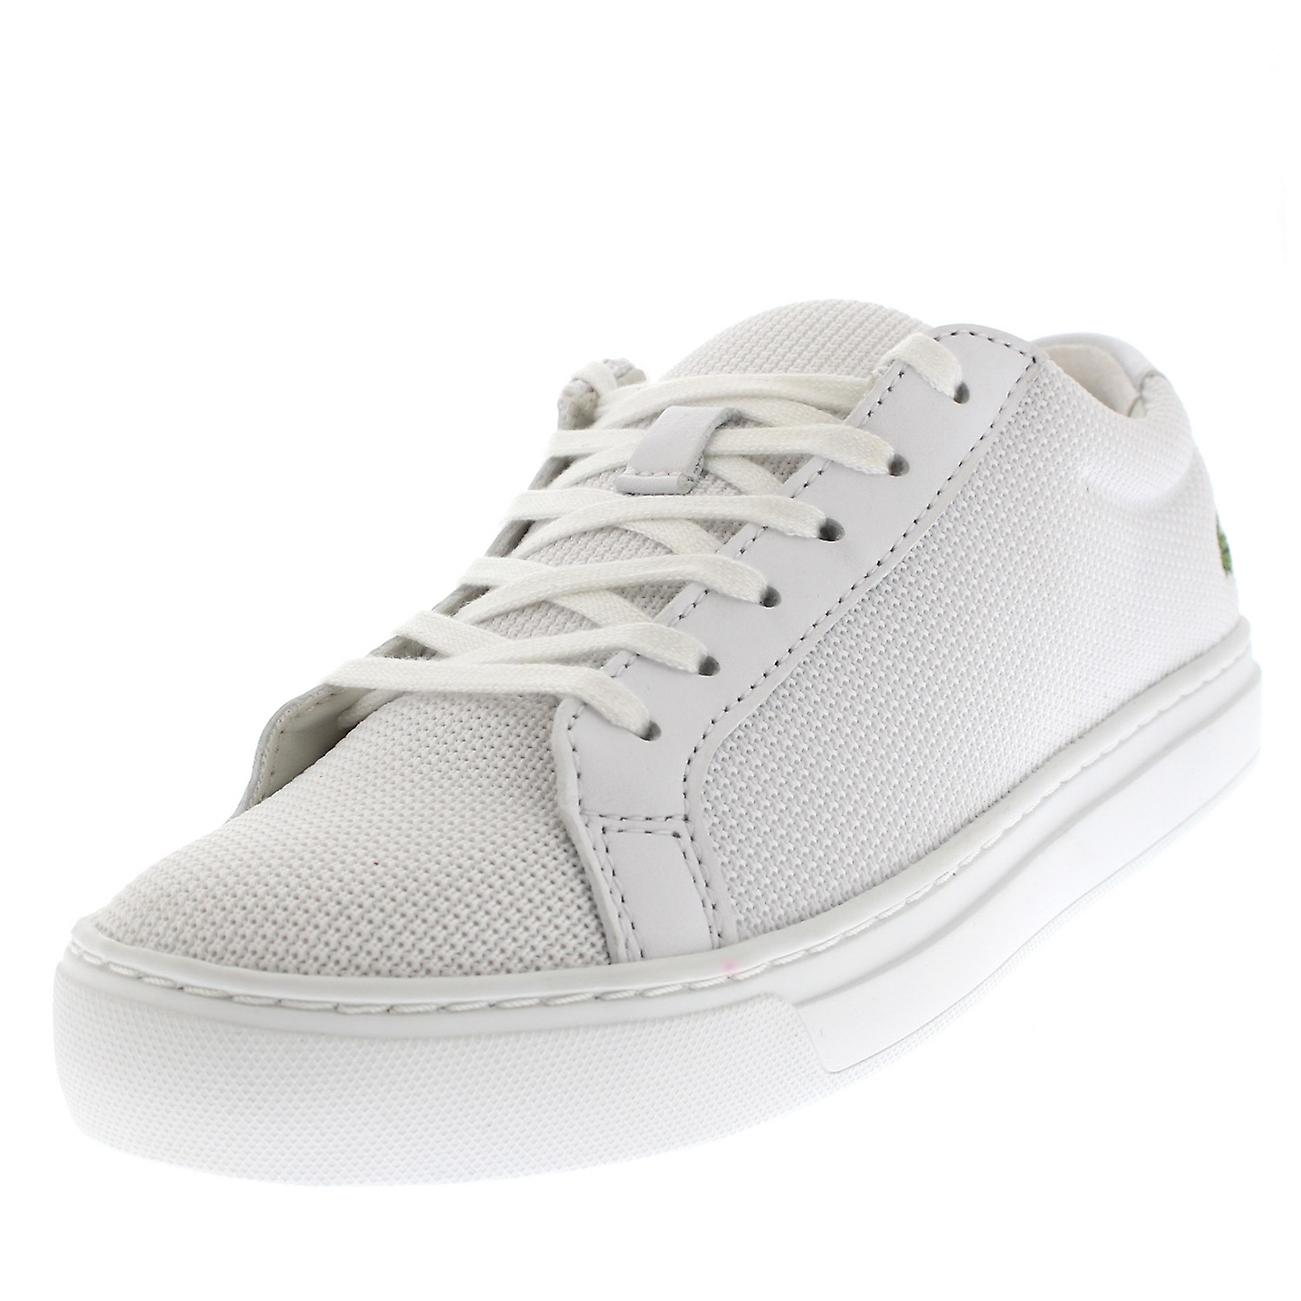 39e21e006 Womens Lacoste L12.12 2 White Low Top Lace Up Fashion Casual Trainers